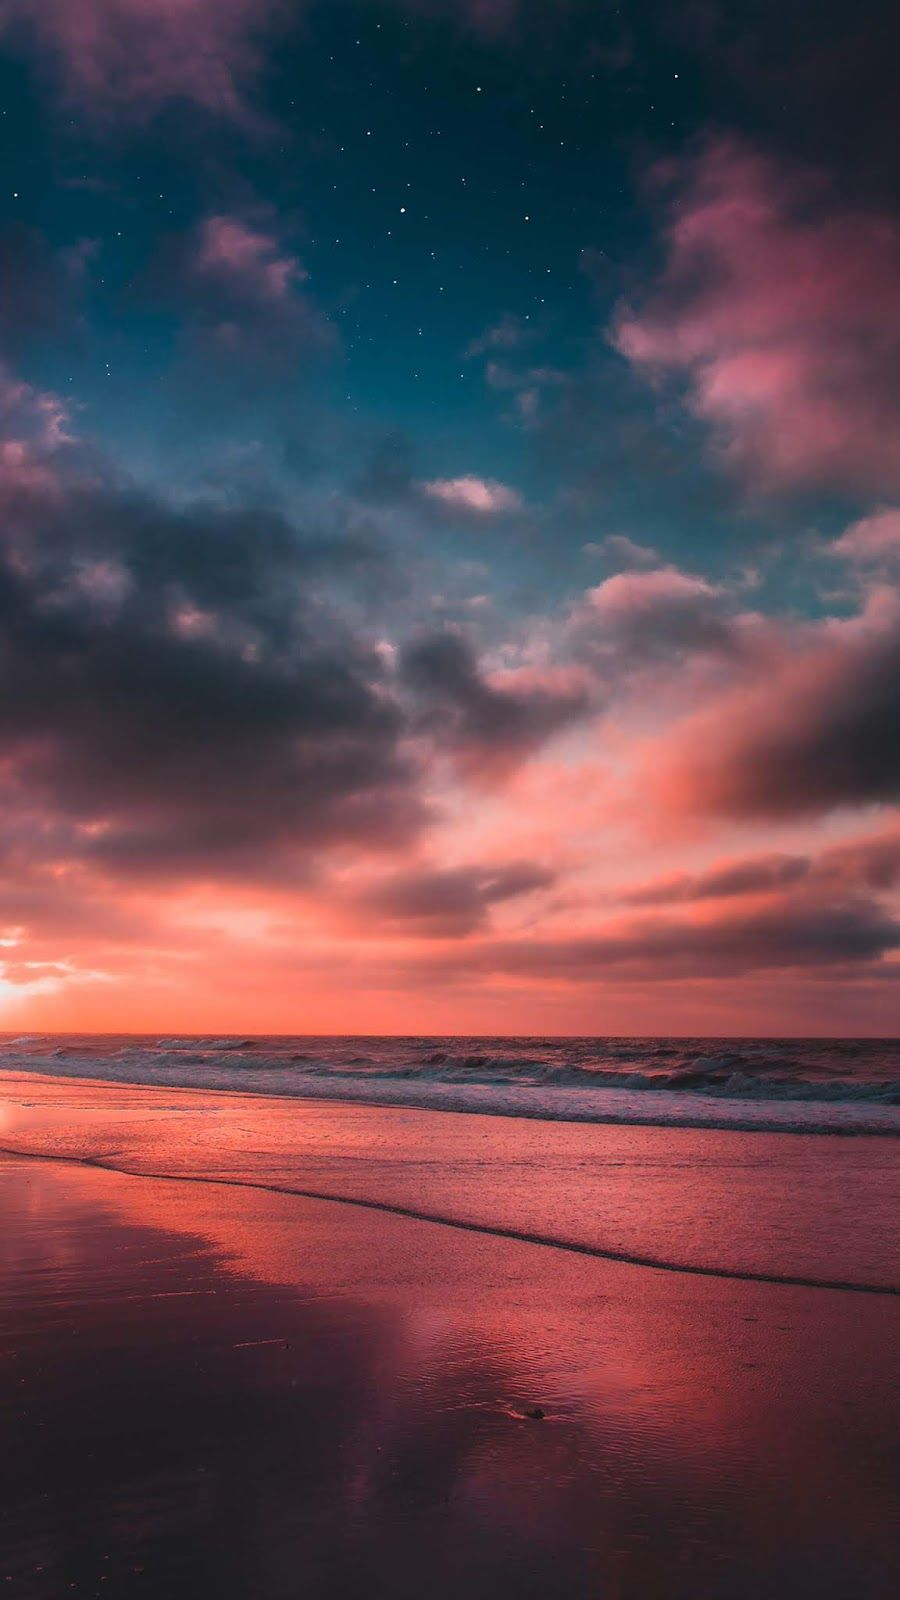 Beach in the night sky wallpaper iphone android